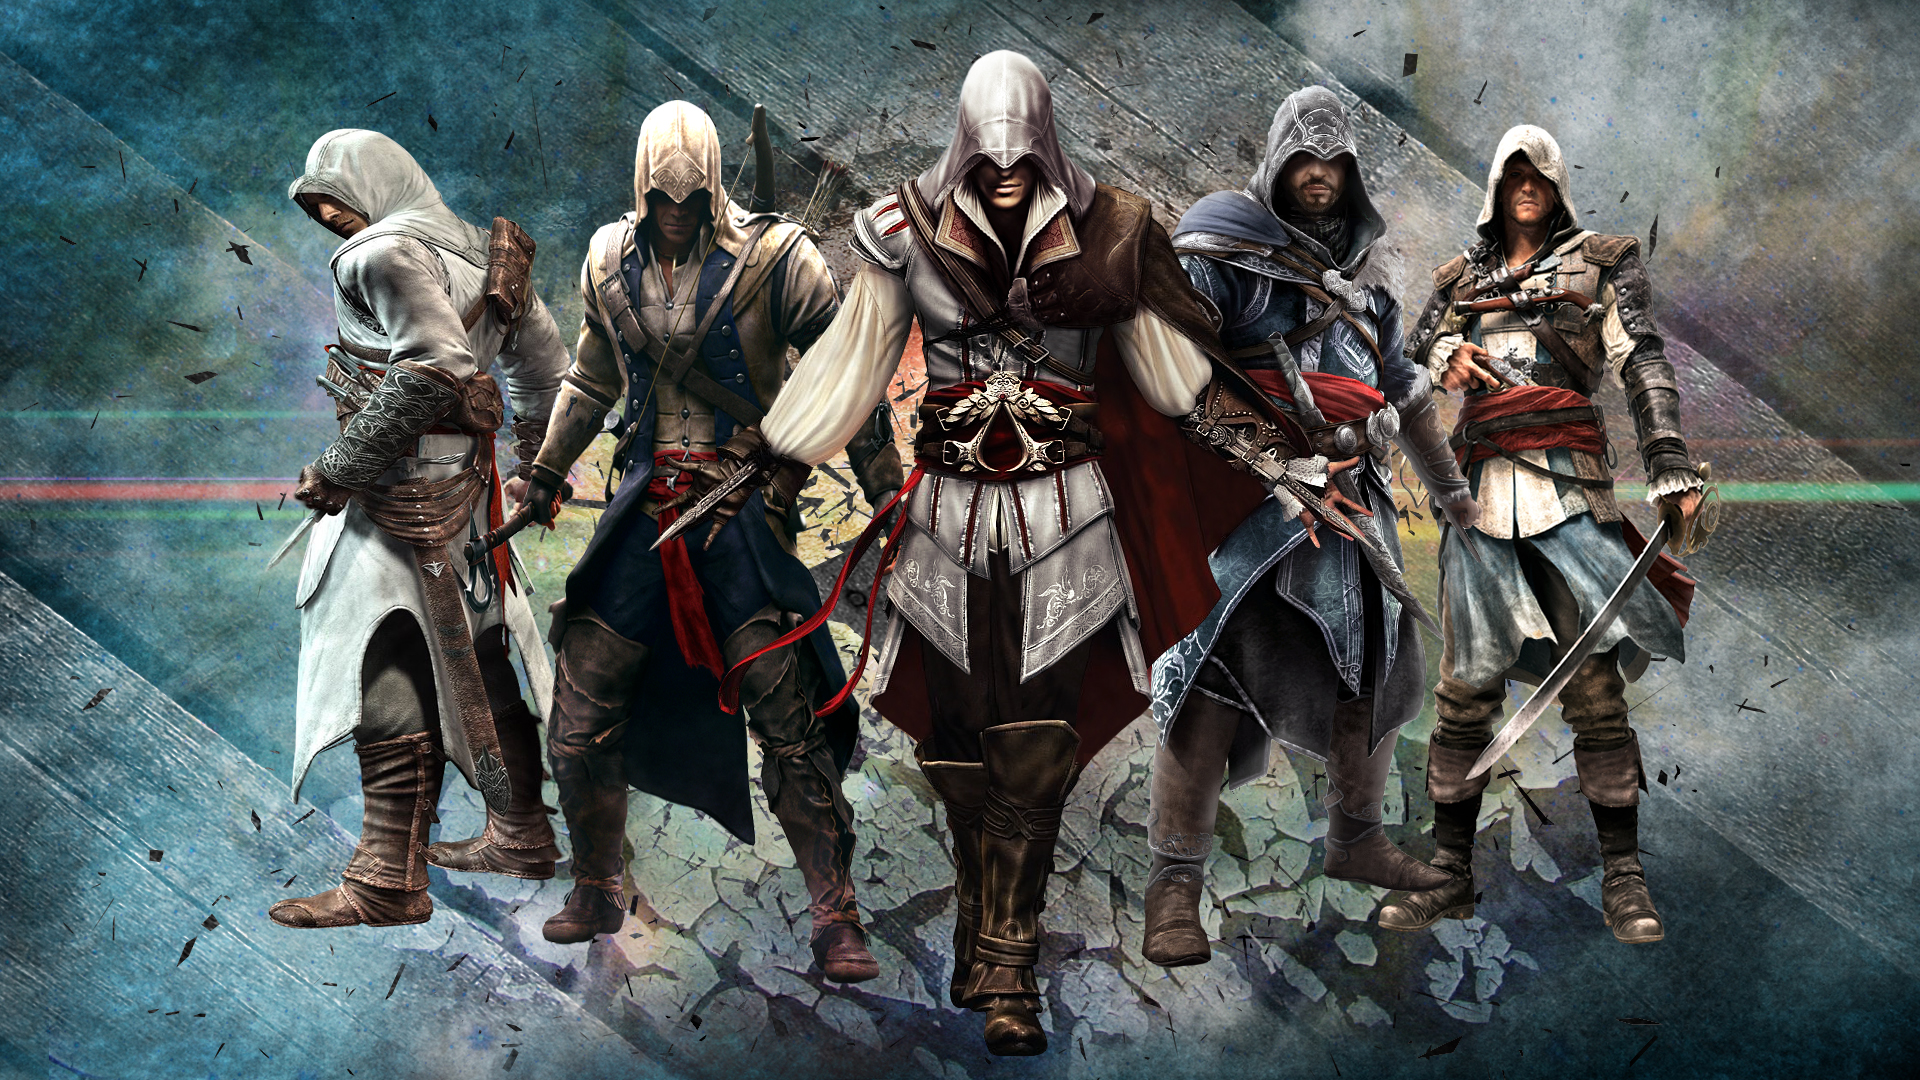 Assassins Creed Wallpaper 1920x1080 25270